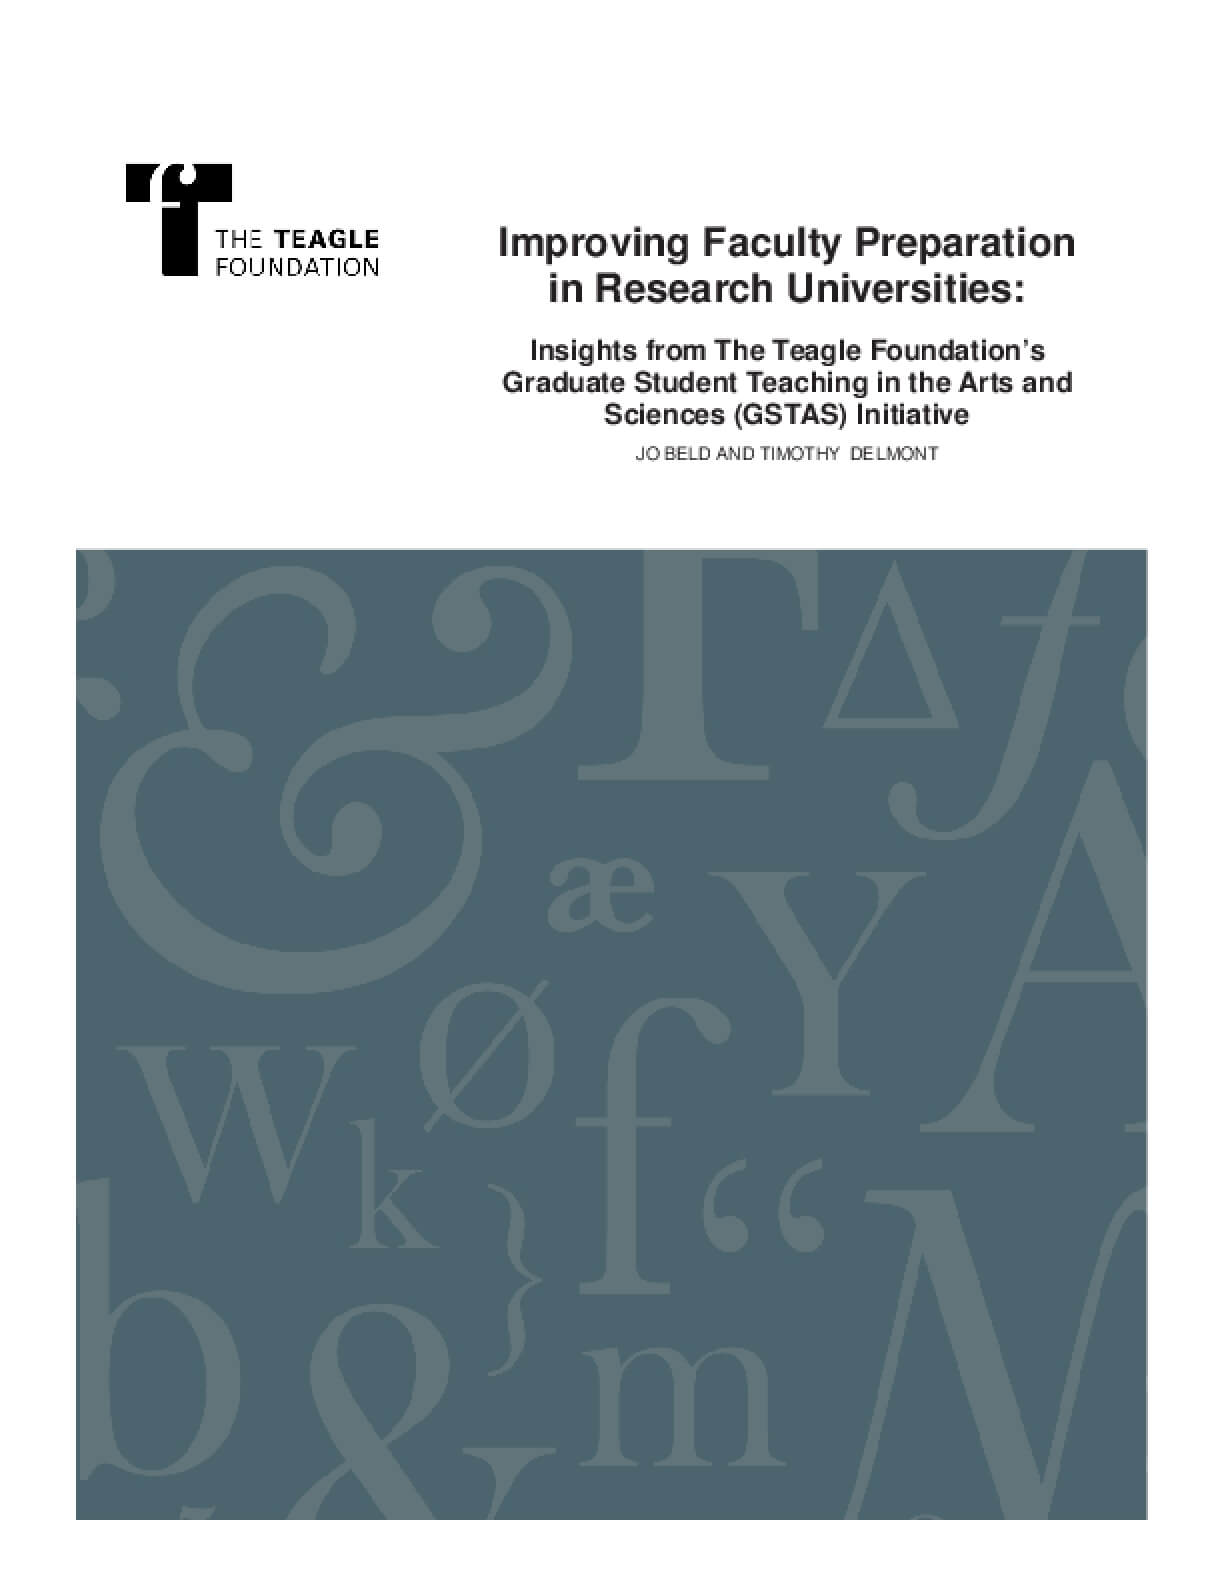 Improving Faculty Preparation in Research Universities: Insights From The Teagle Foundation's Graduate Student Teaching in the Arts and Sciences (GSTAS) Initiative